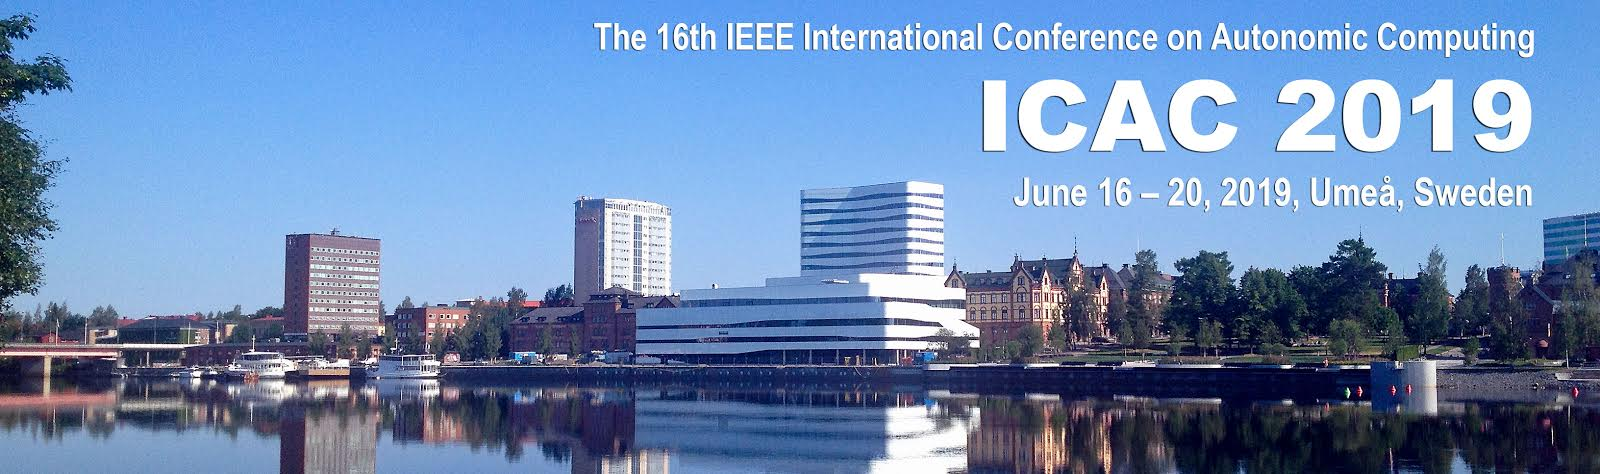 ICAC 2019 - The International Conference on Autonomic Computing